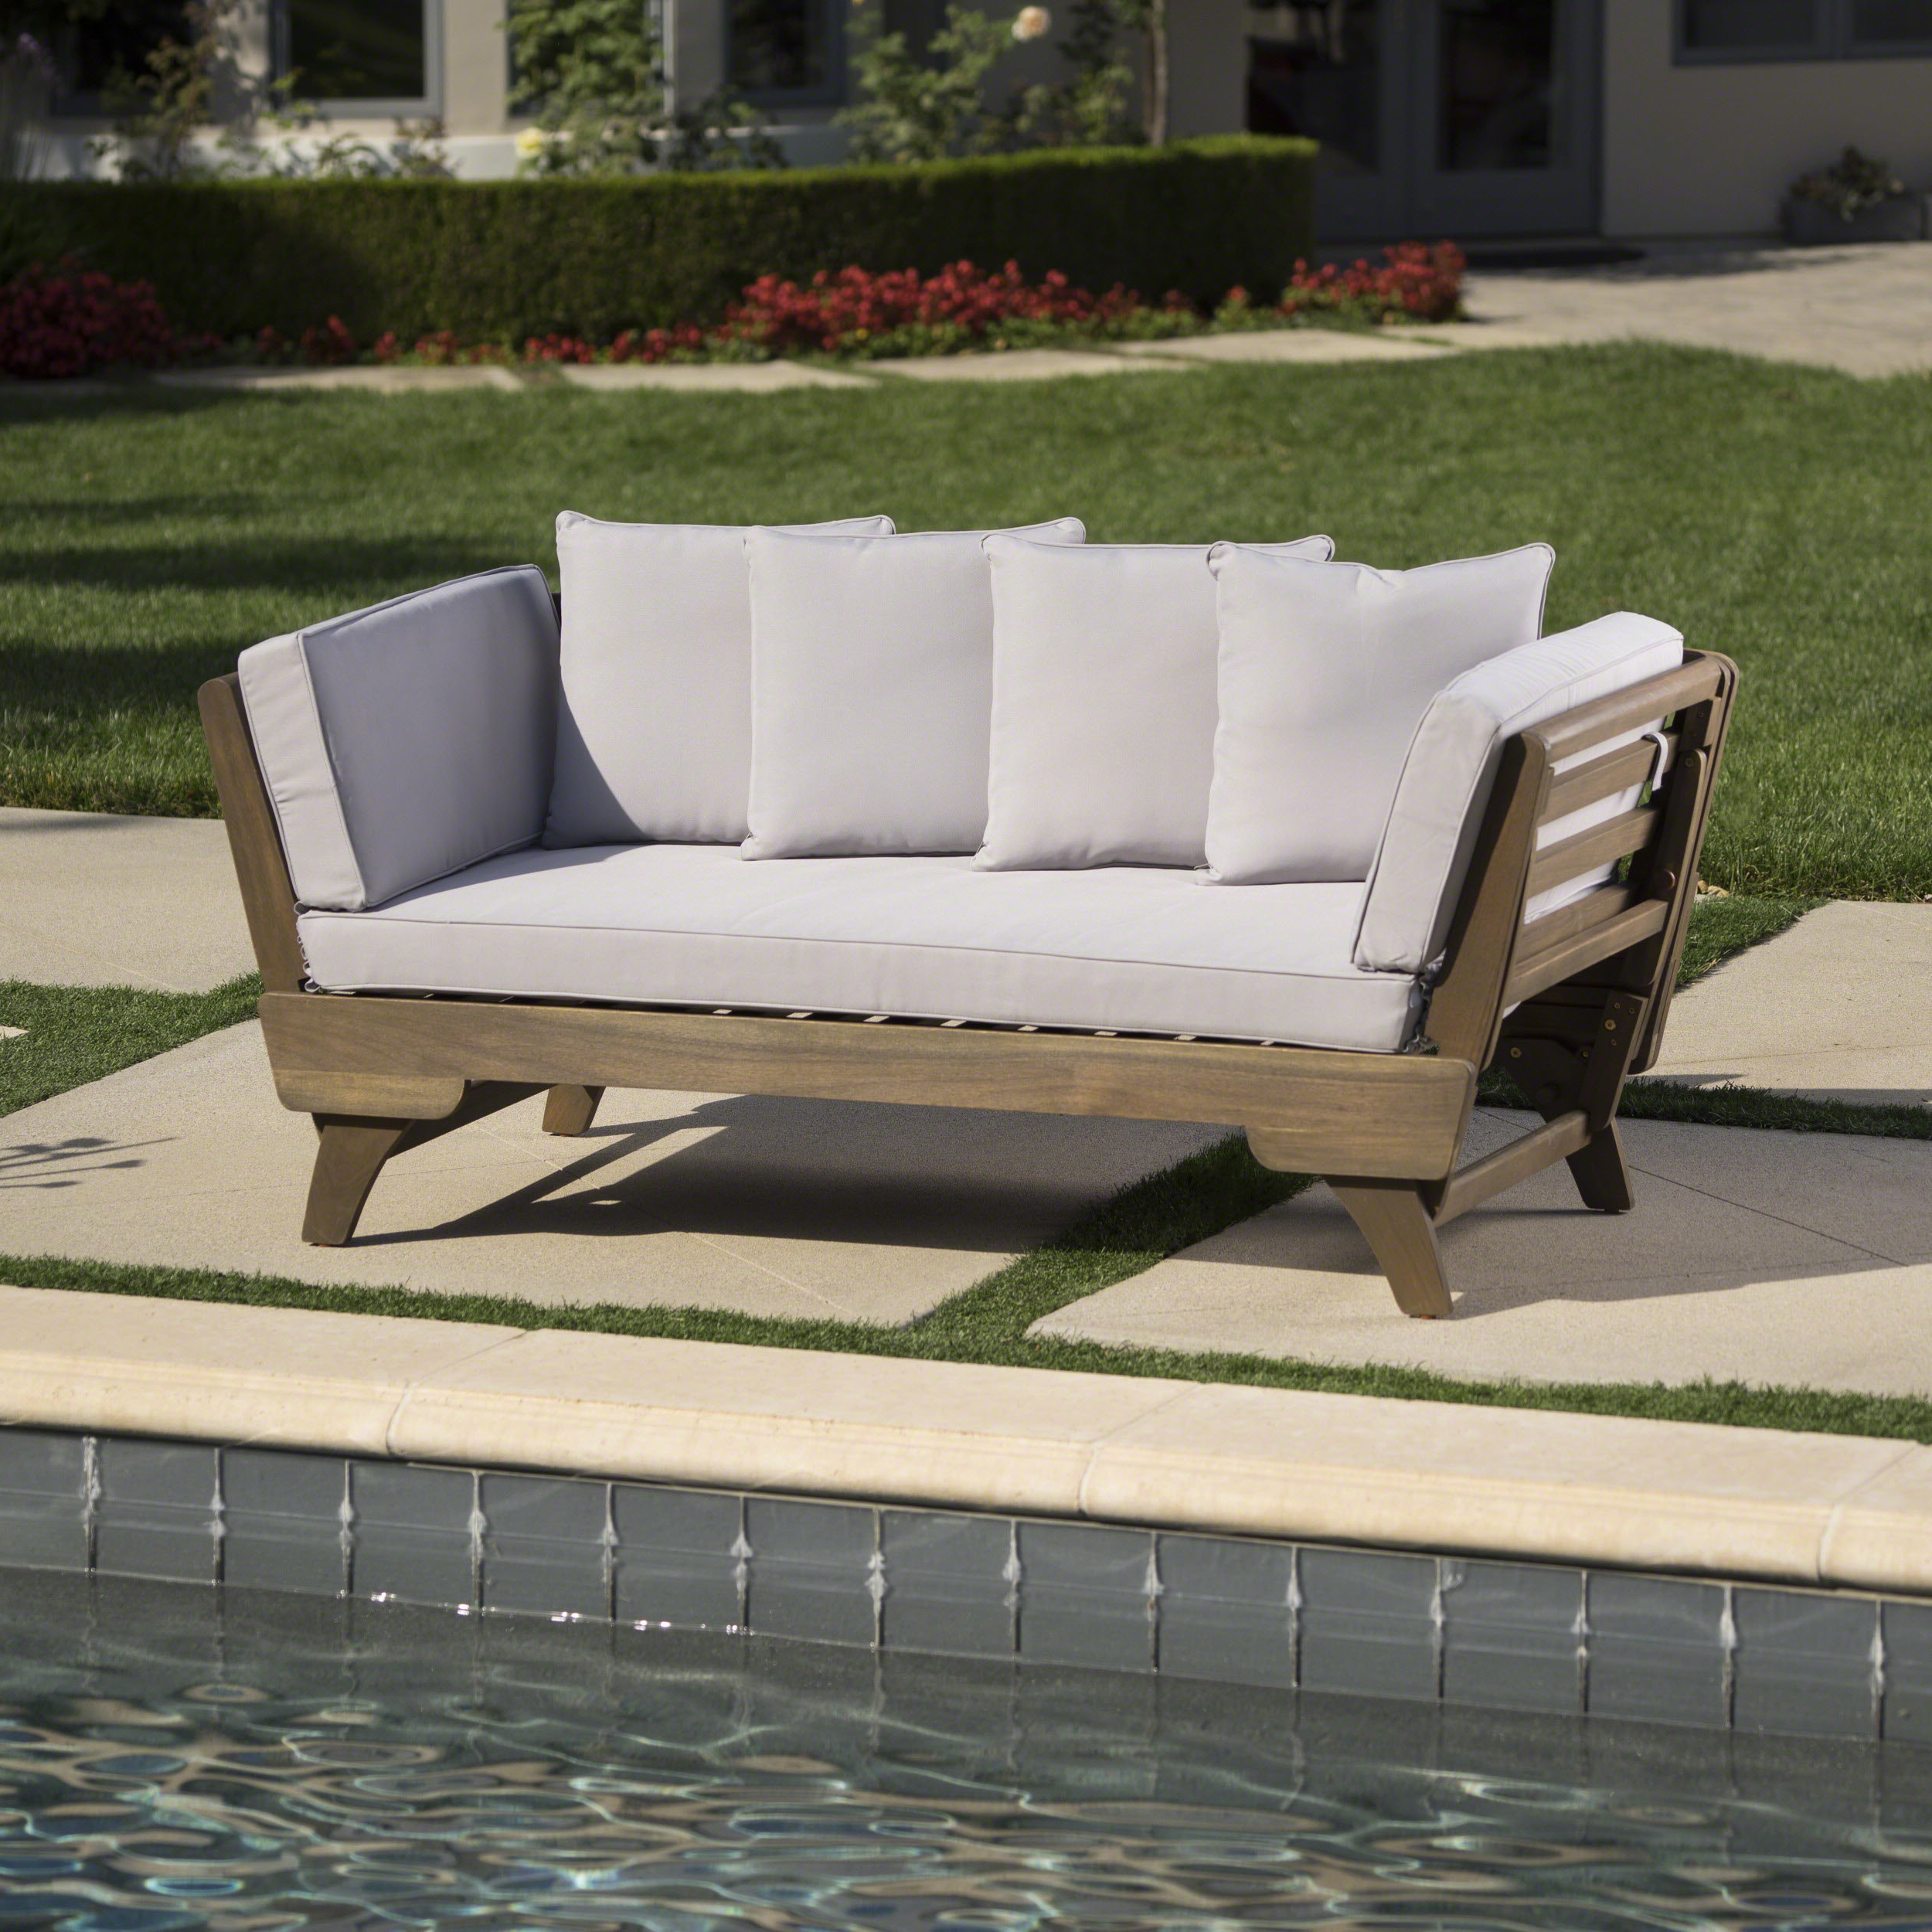 Union Rustic Ellanti Teak Patio Daybed With Cushions For Well Liked Grosvenor Bamboo Patio Daybeds With Cushions (Gallery 11 of 20)